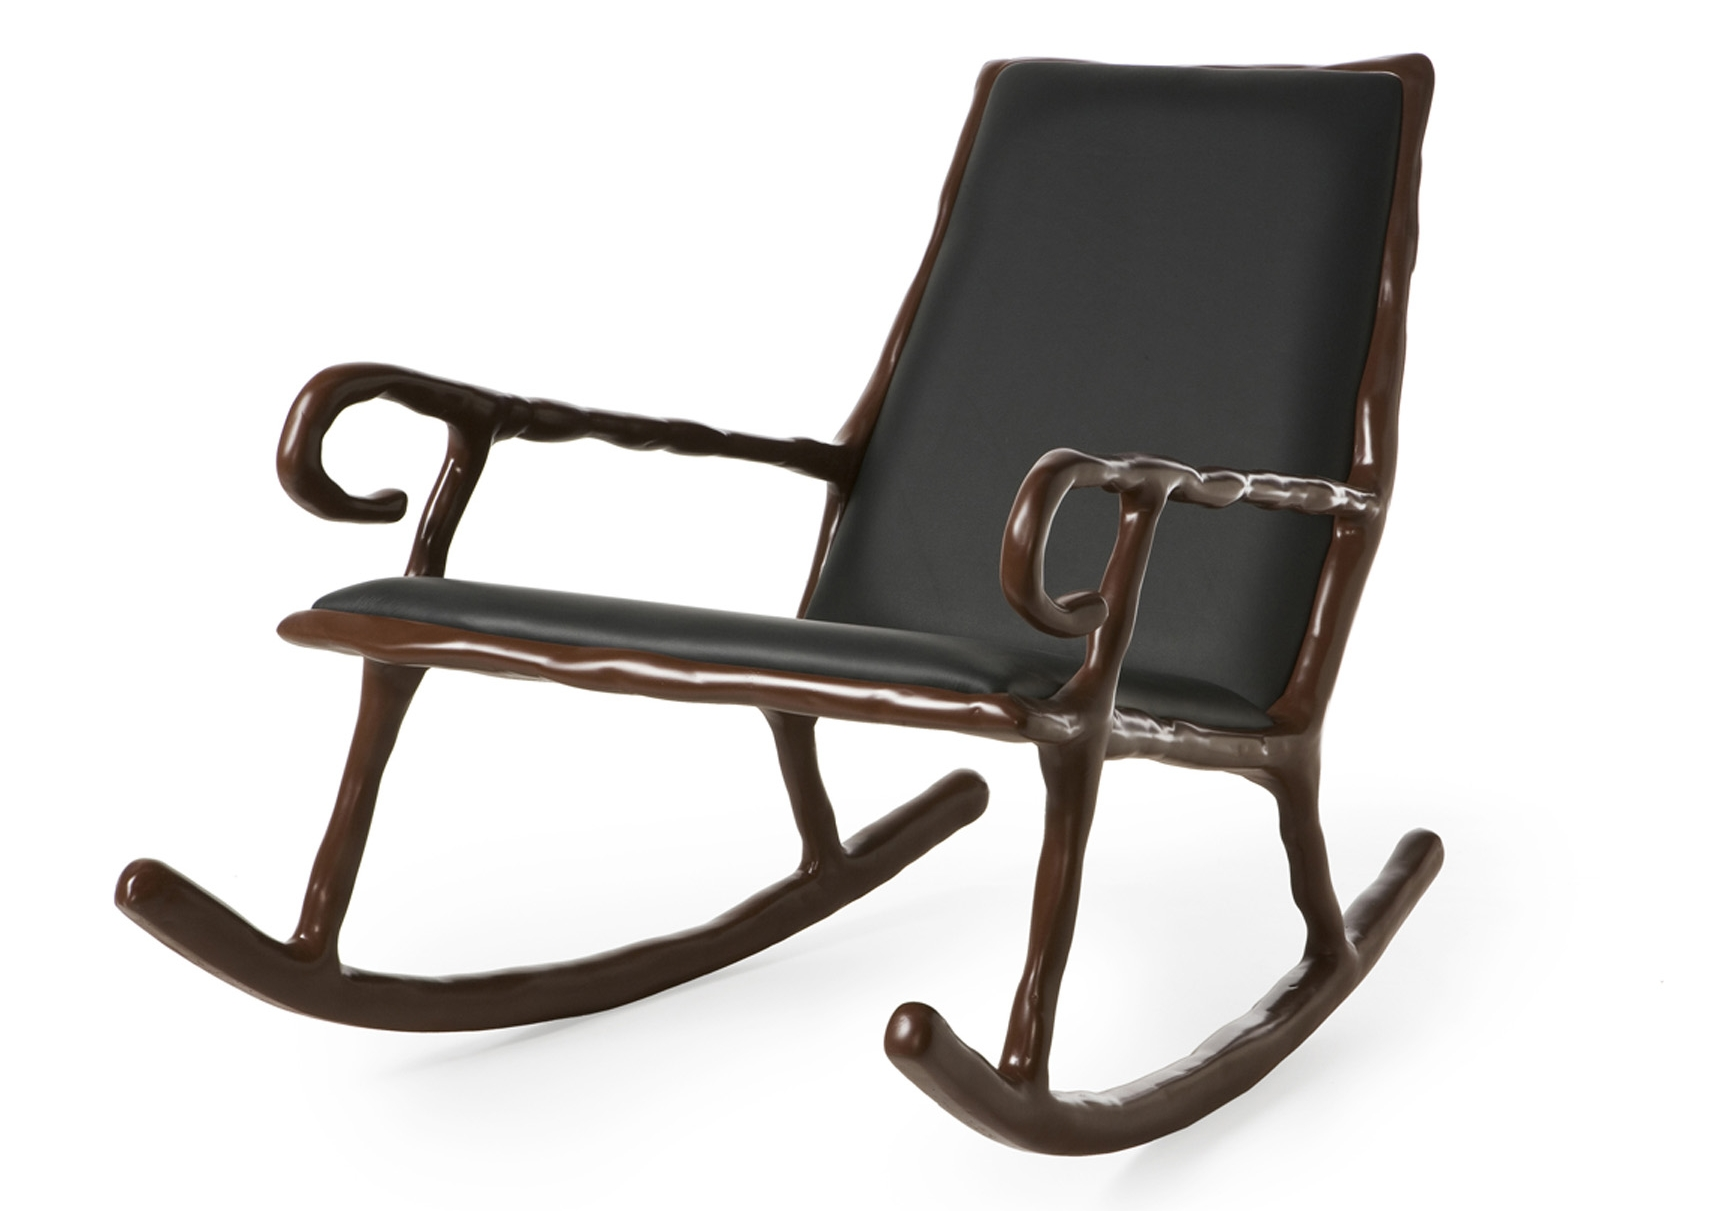 Incredible and Rebellious Contemporary Design by Baas - Clay Rocking Chair maarten baas Incredible and Rebellious Contemporary Designs by Maarten Baas Incredible and Rebellious Contemporary Design by Baas Clay Rocking Chair